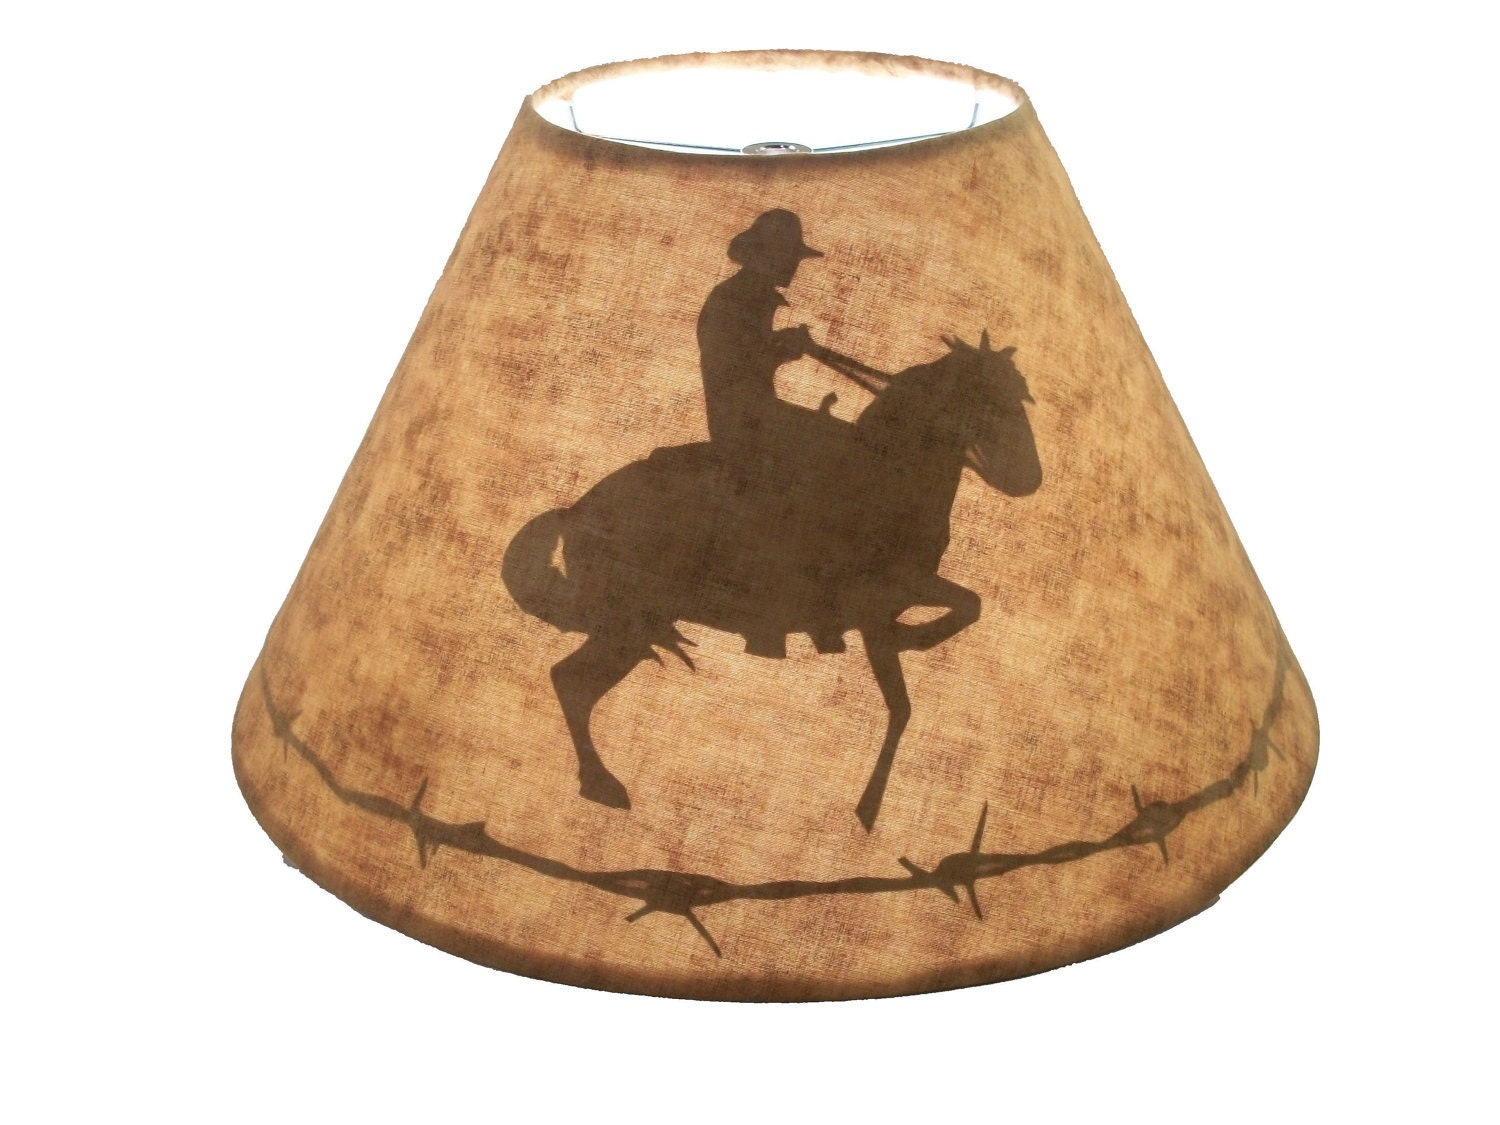 Western Lamp Shade With A Silhouette Of A Horse And Cowboy